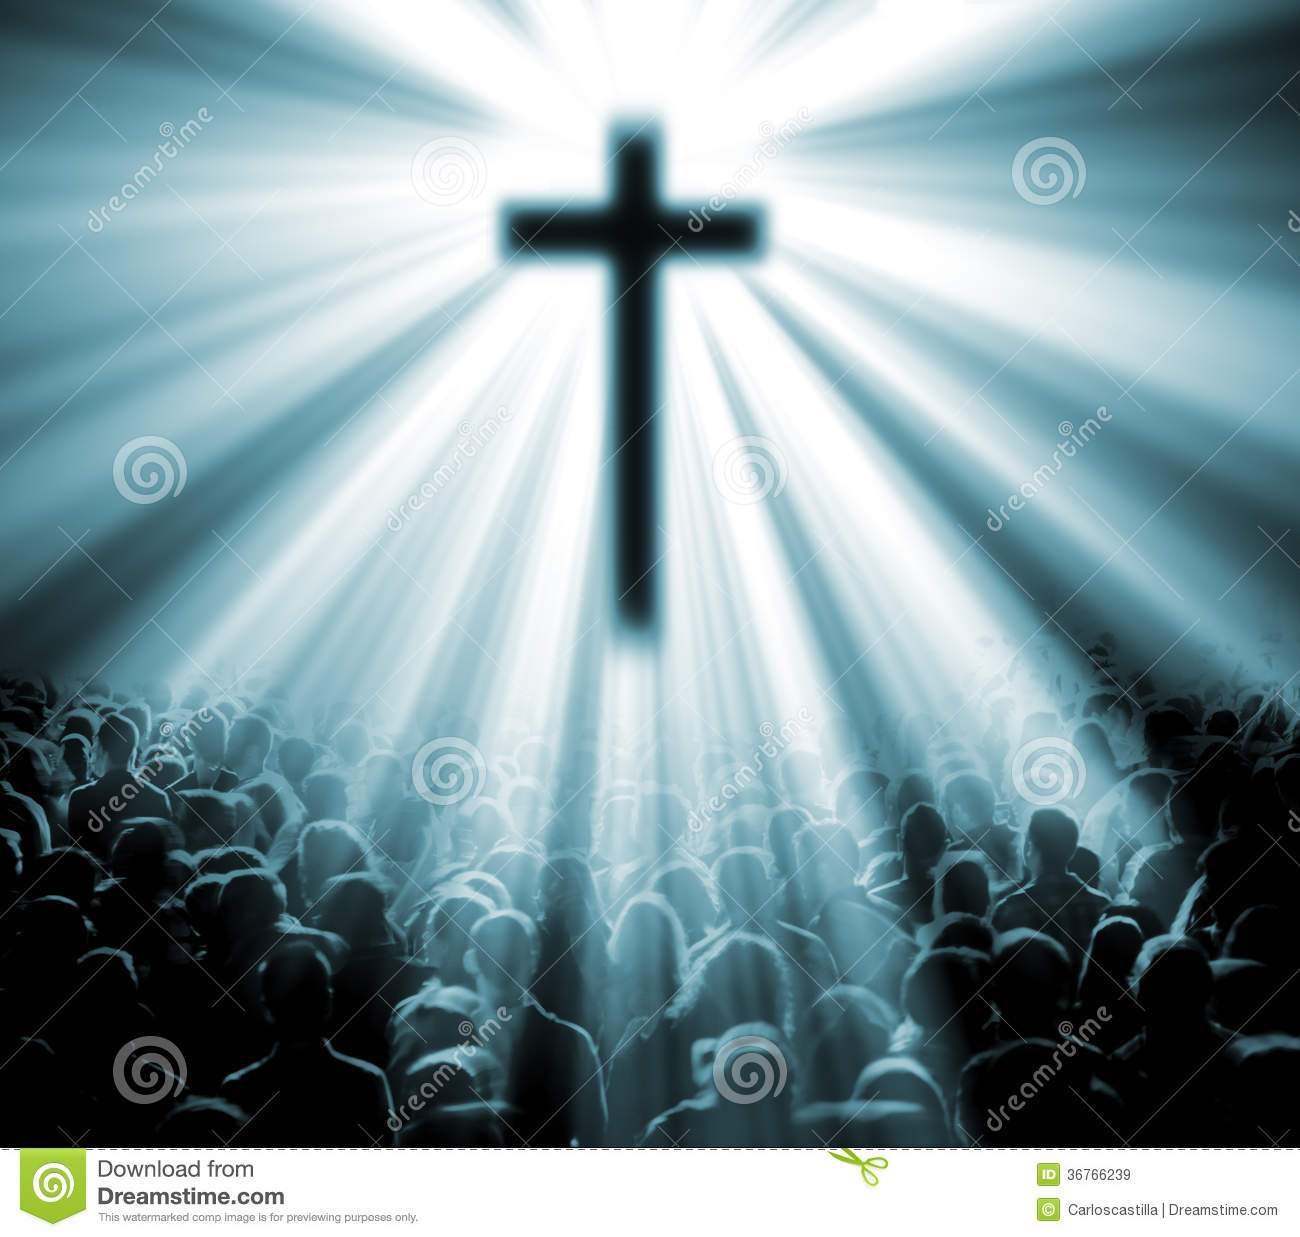 Christian religion. Illustration with cross of christ and believers.